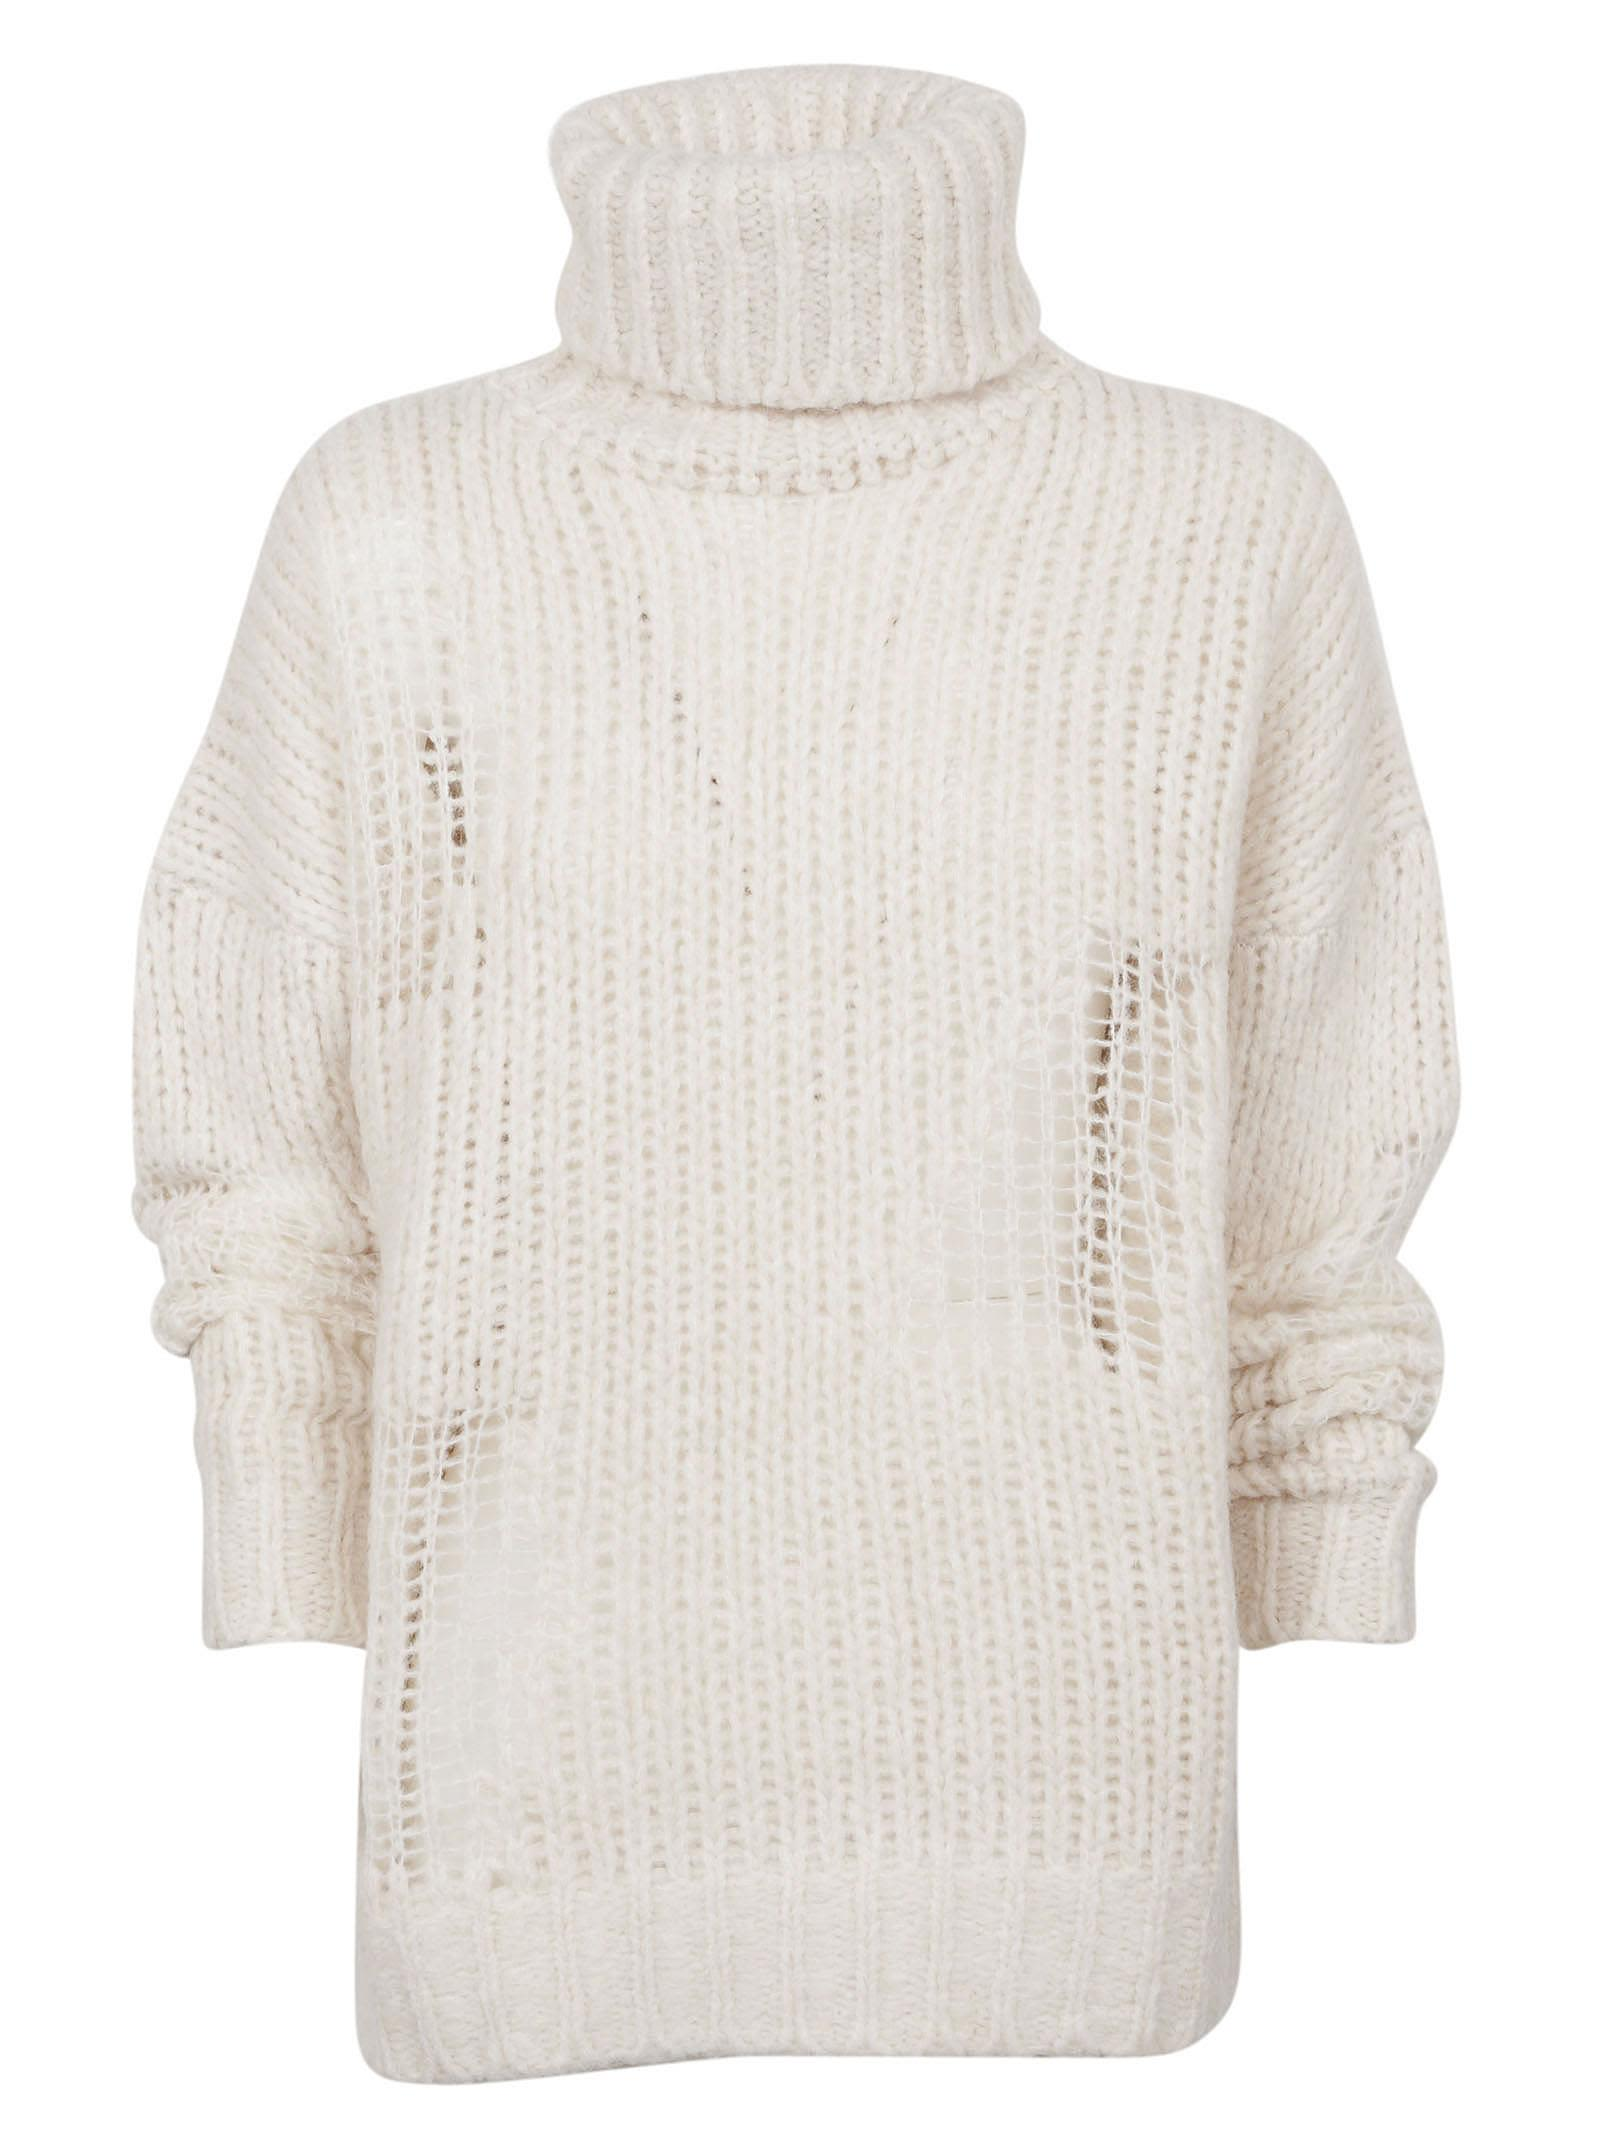 Iro Distressed Knitted Sweater